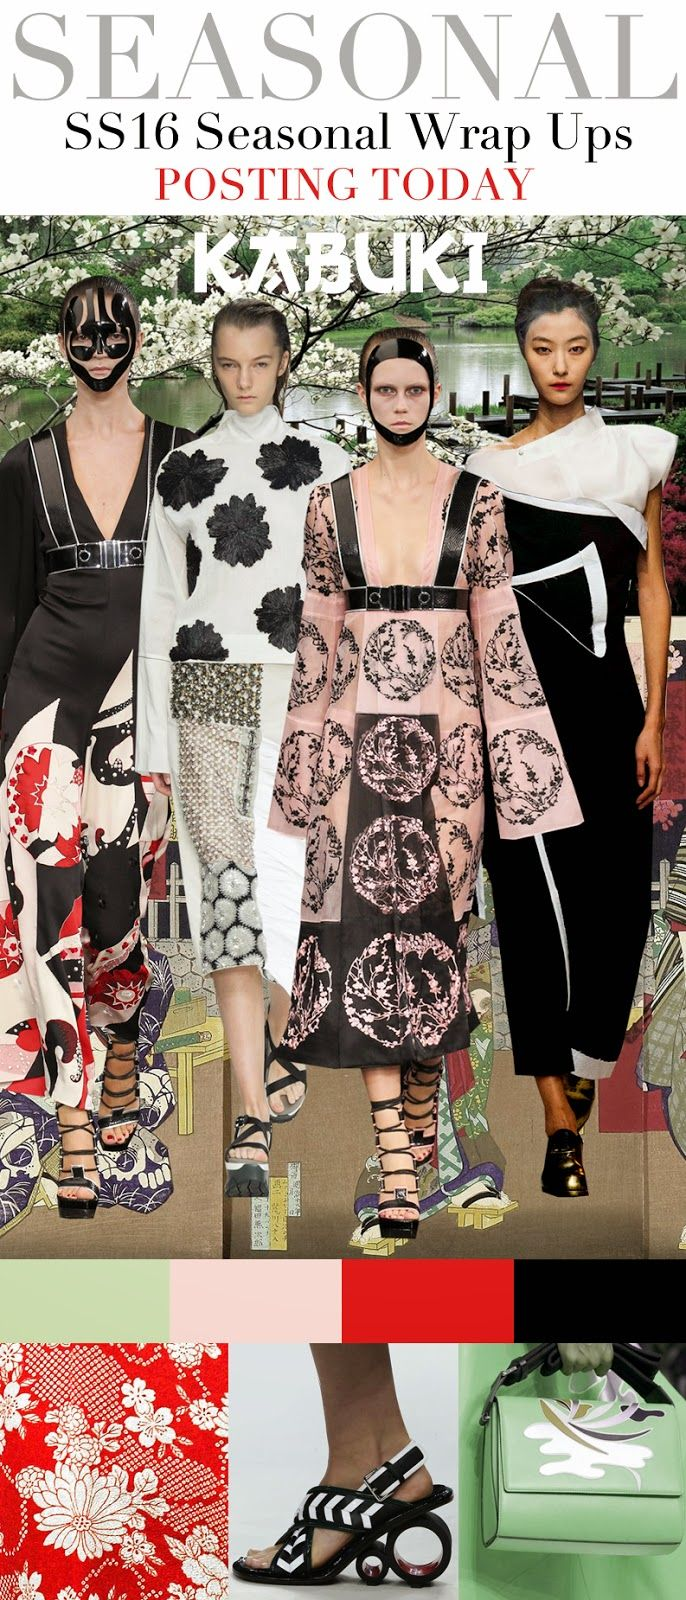 FASHION VIGNETTE: Trends. seasonal wraps are focused to be ...